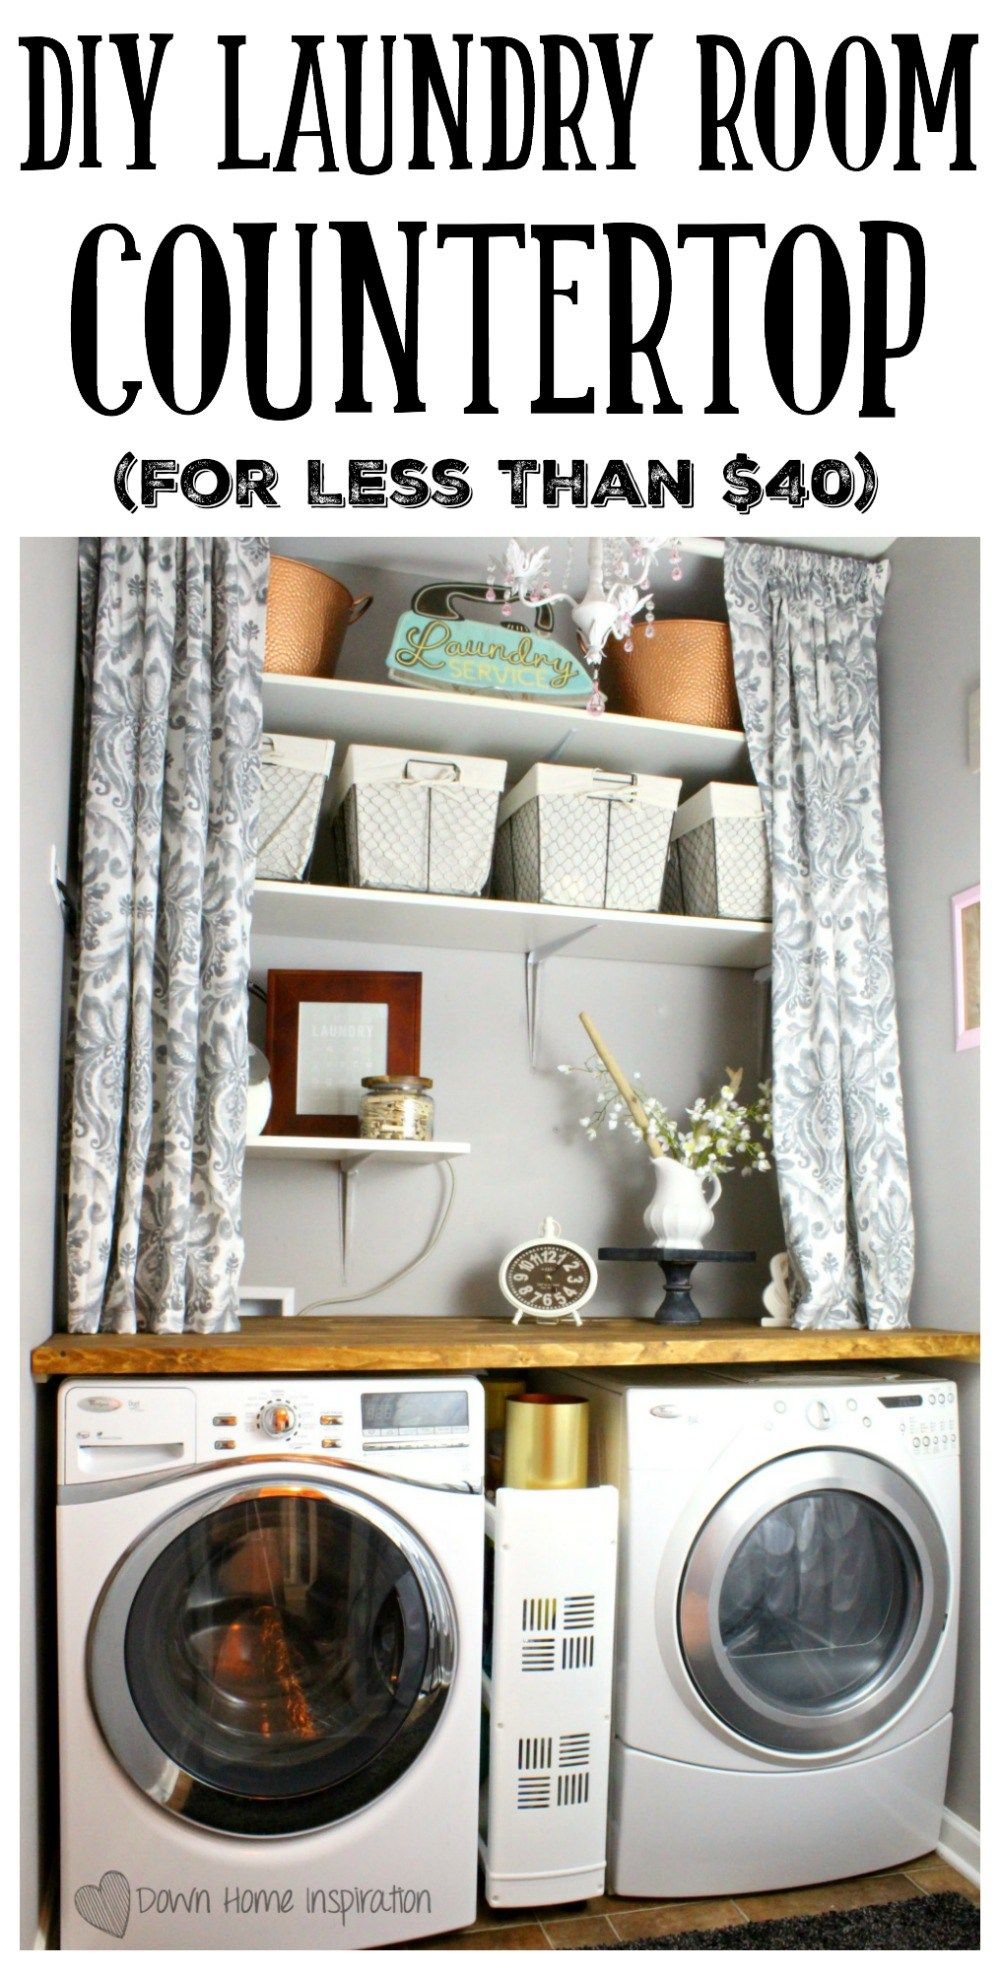 Diy Laundry Room Countertop For Under 40 Laundry Room Diy